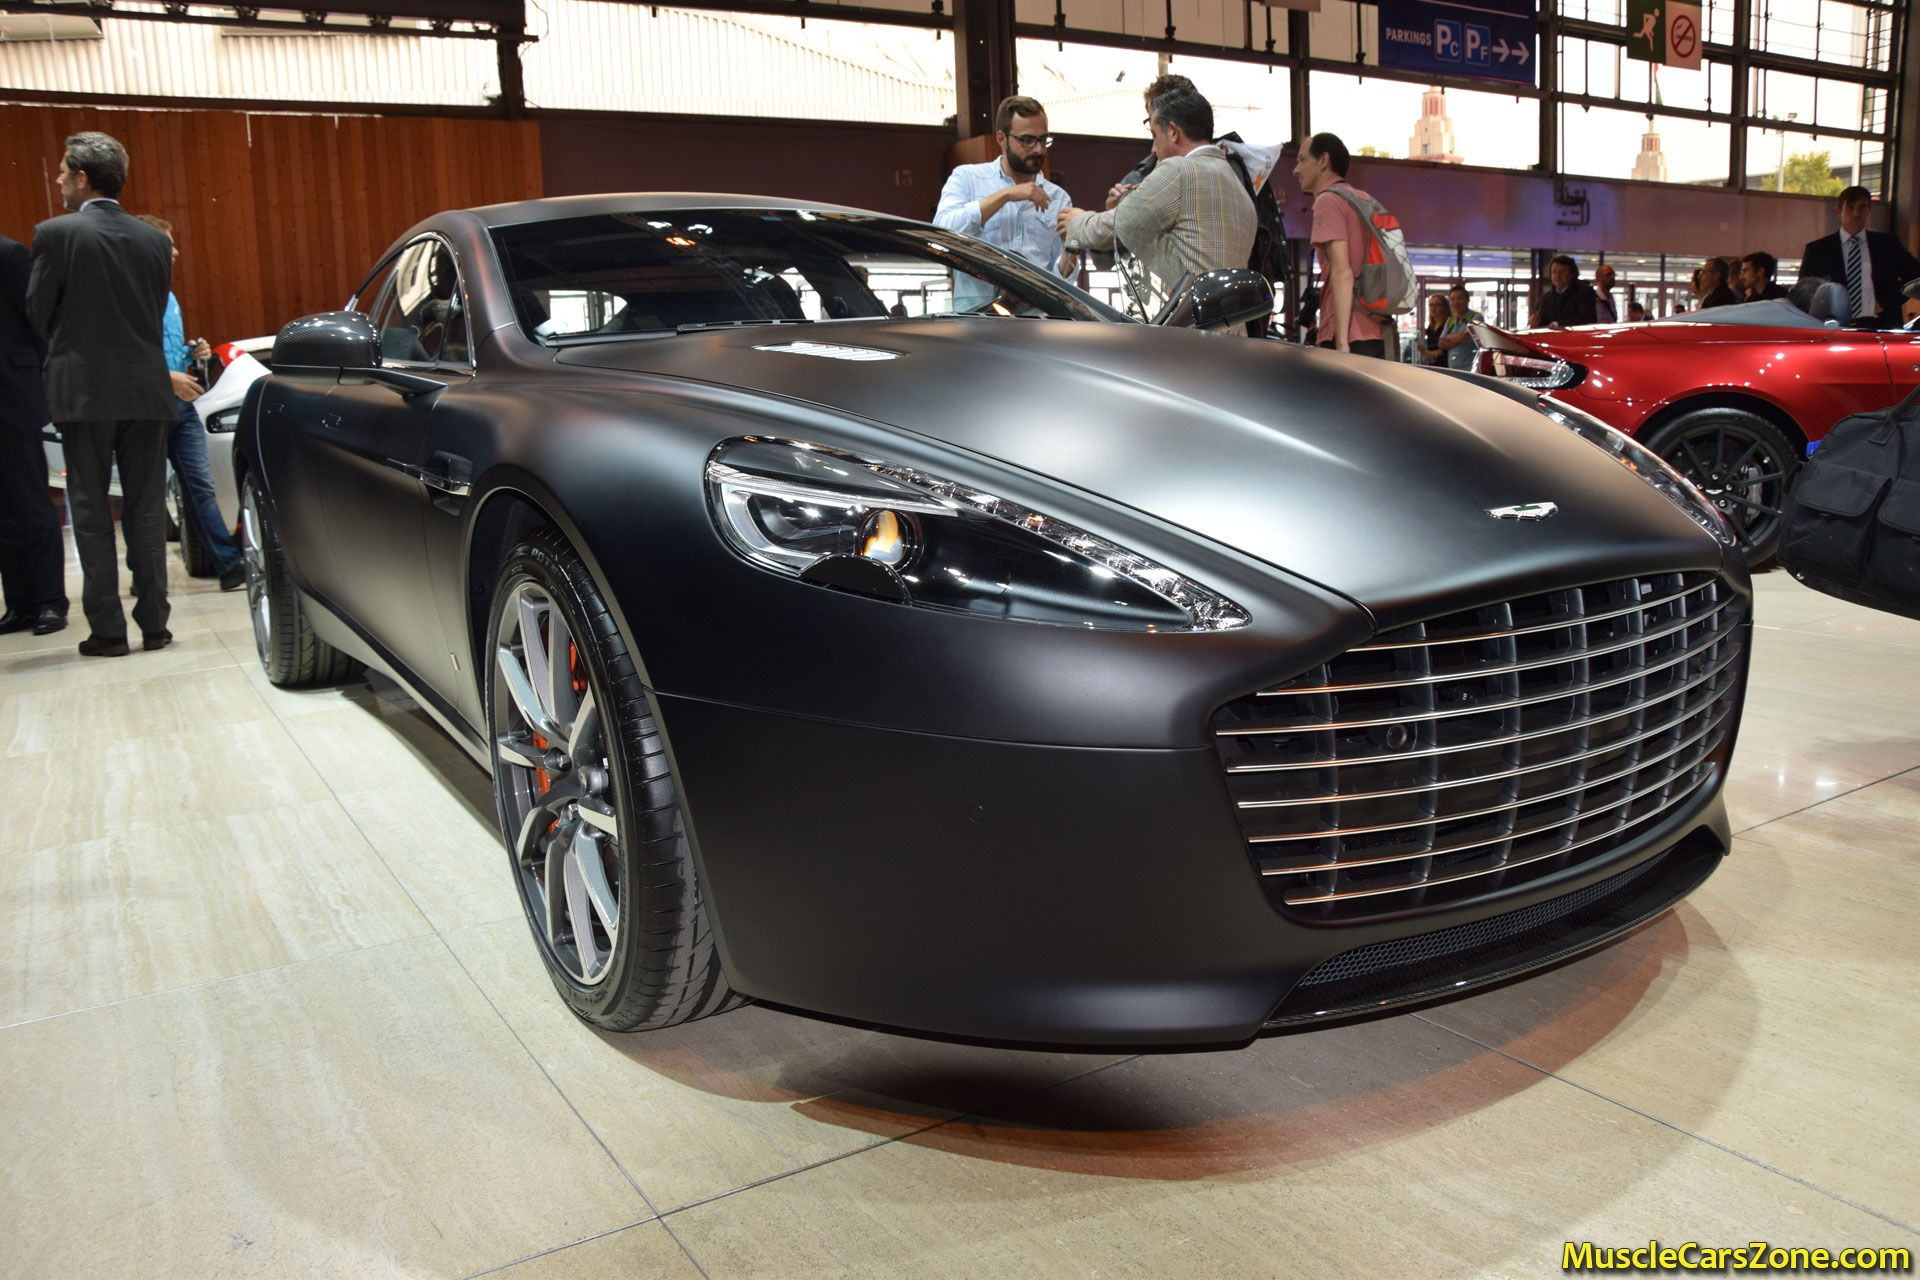 aston martin rapide s 2014 paris motor show 6 muscle cars zone. Black Bedroom Furniture Sets. Home Design Ideas